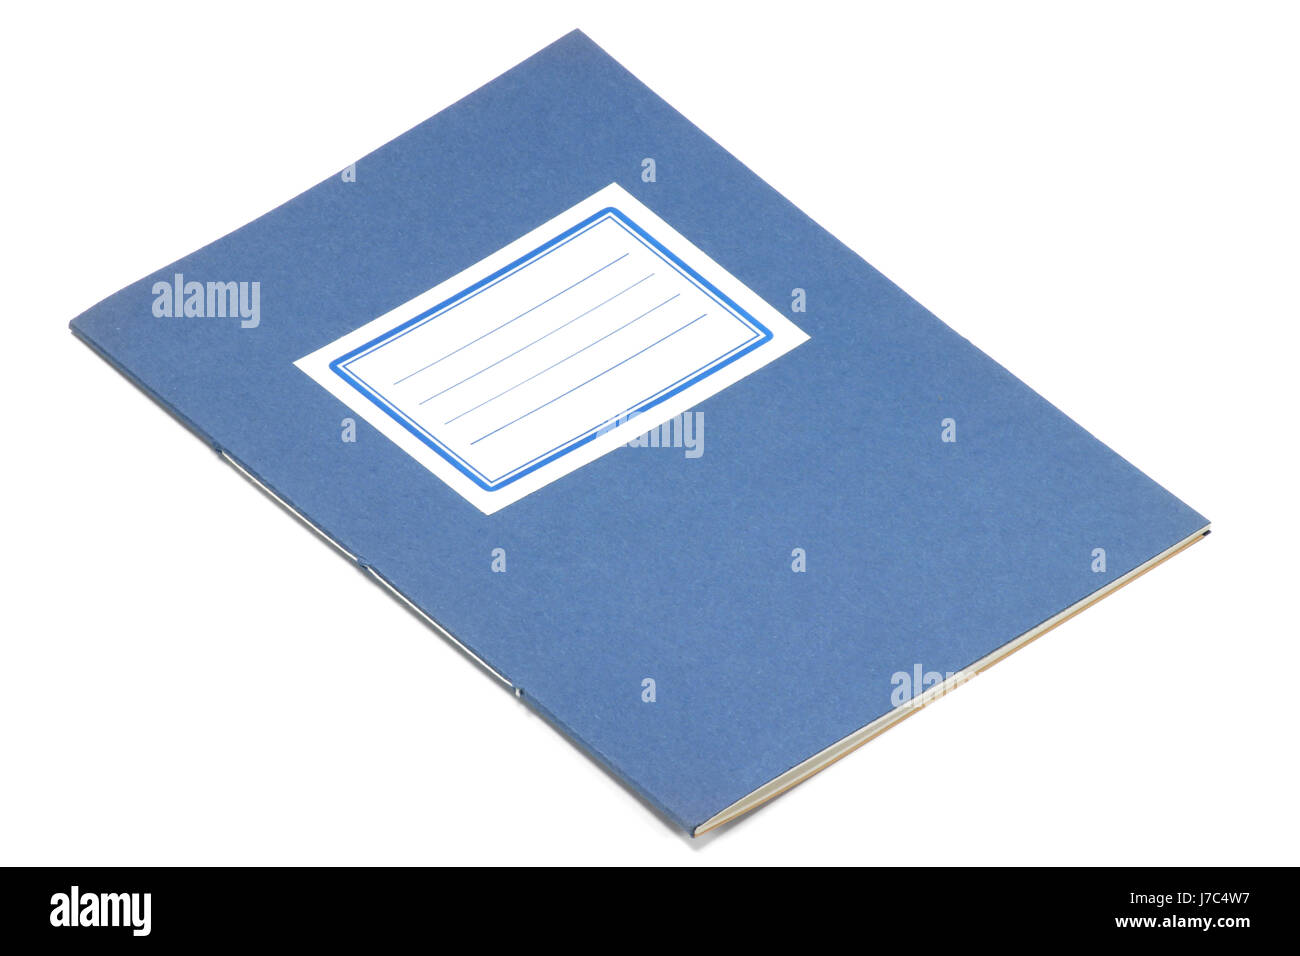 old exercise book isolated on white background - Stock Image